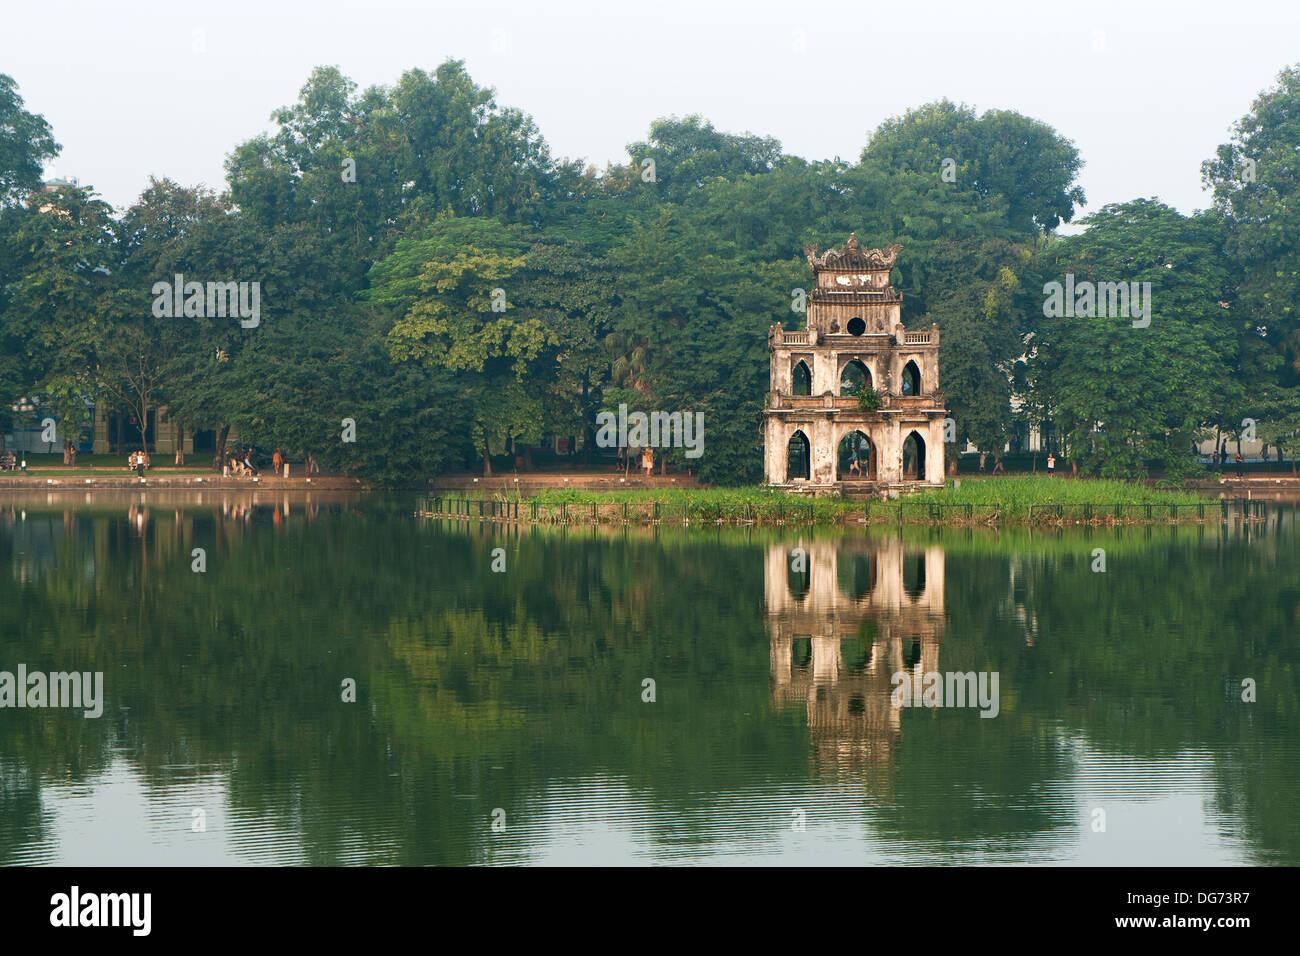 Reflection of Turtle Tower at the Hoan Kiem Lake in the morning, in Hanoi, Vietnam. - Stock Image